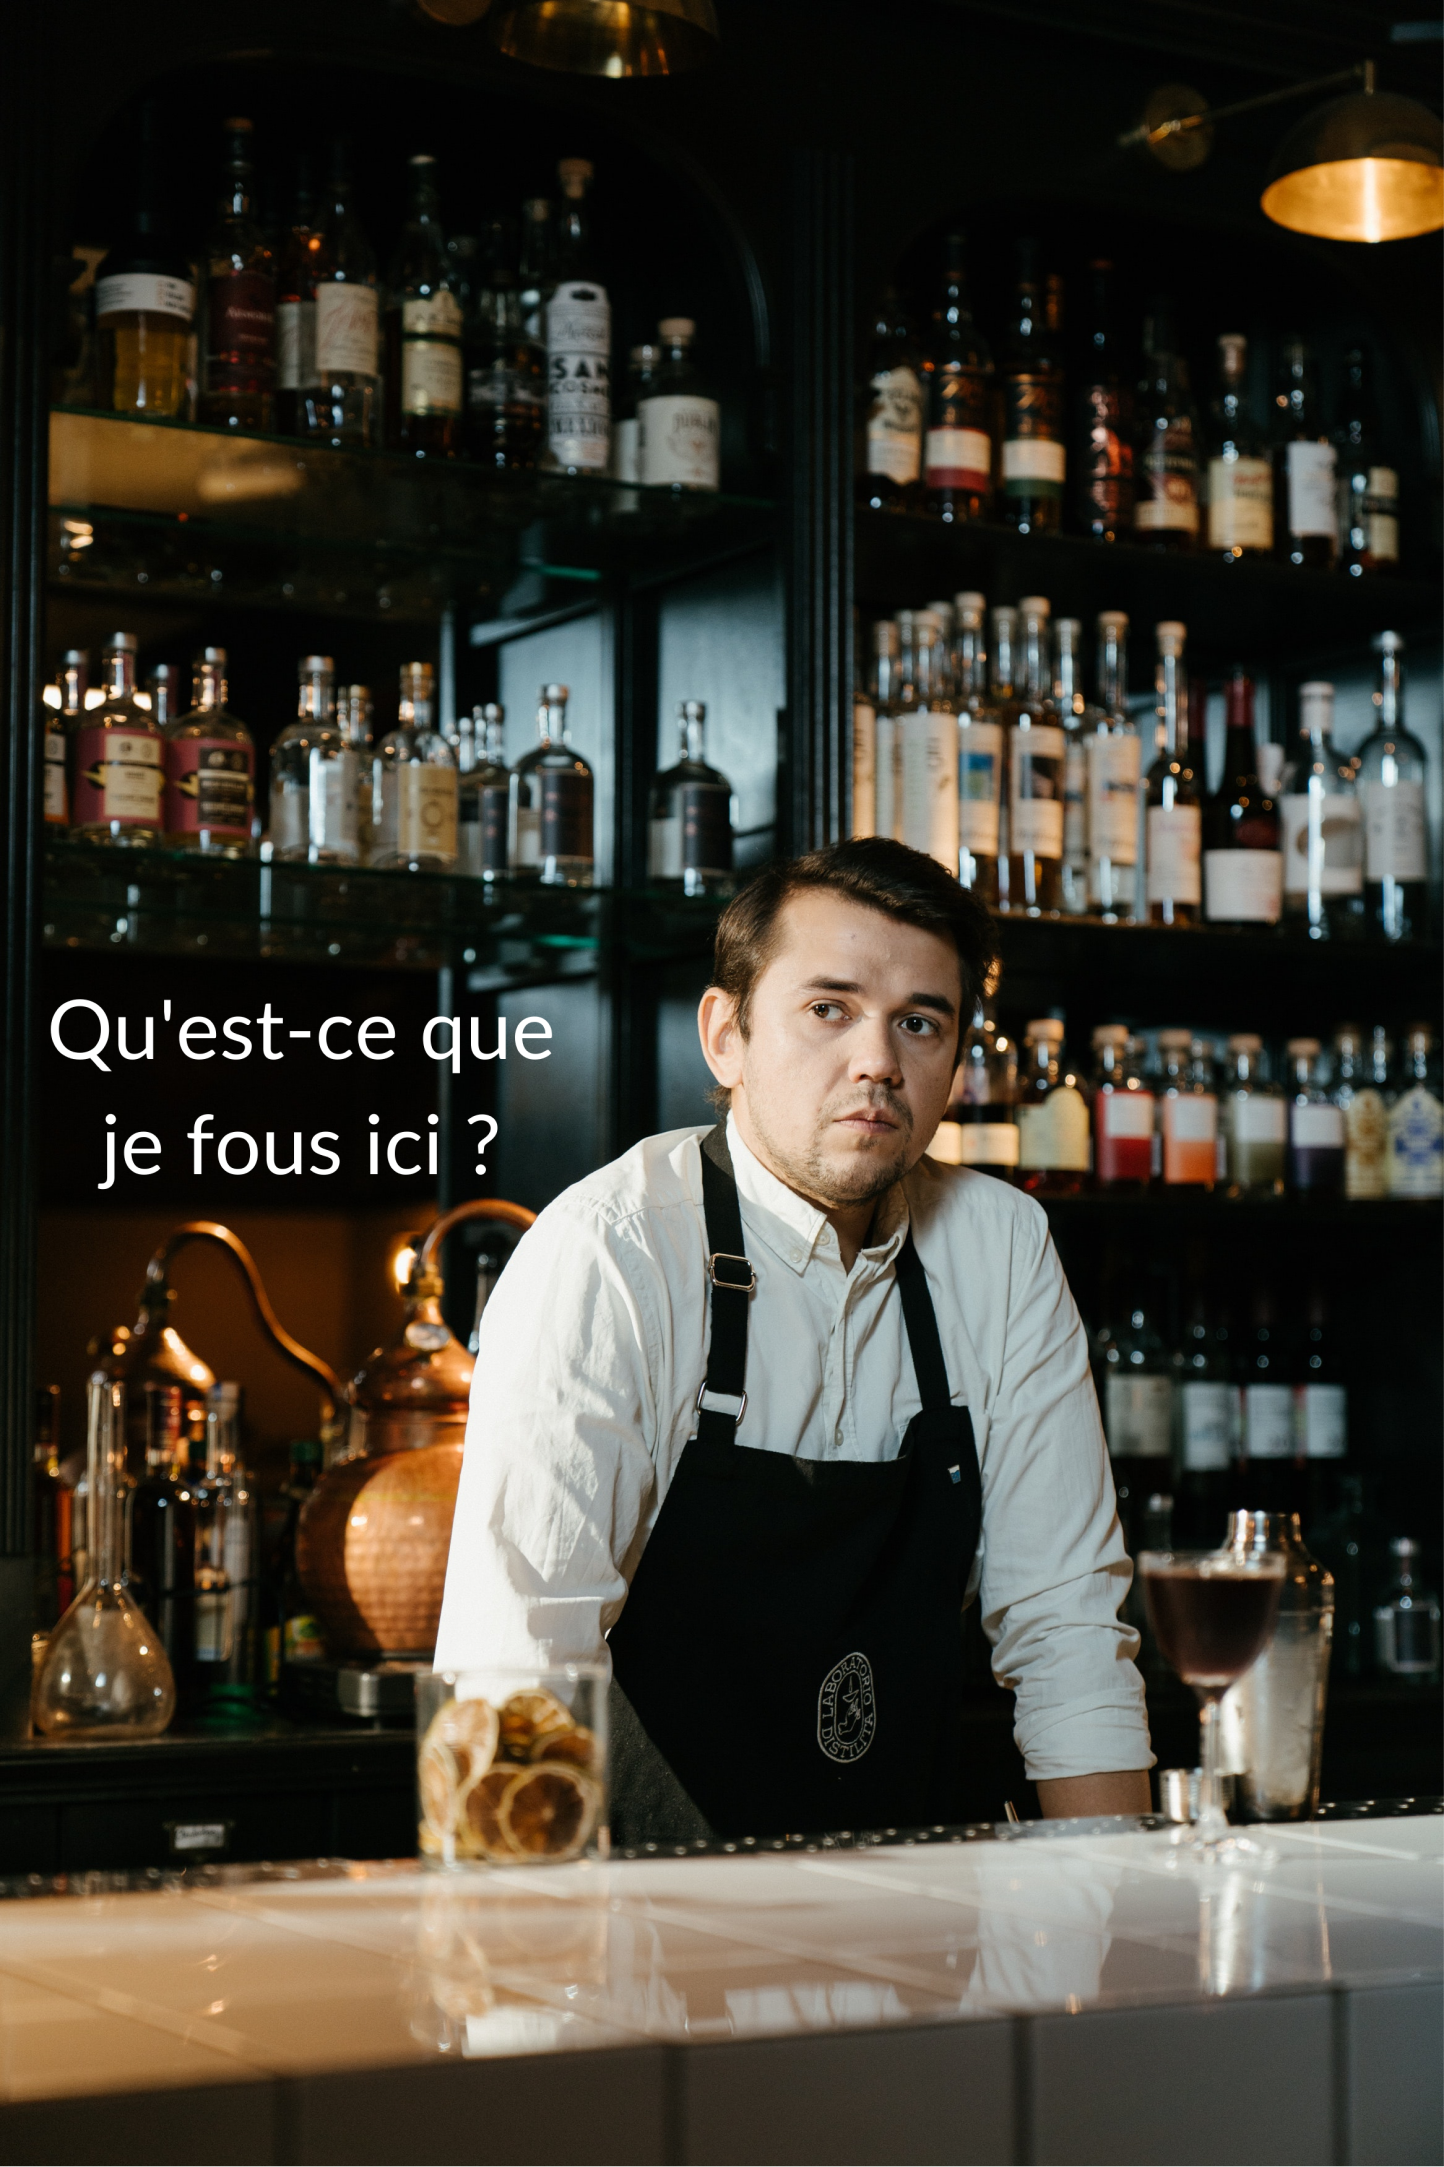 why-am-i-here-Tales-from-your-bartender-june-2021-FR